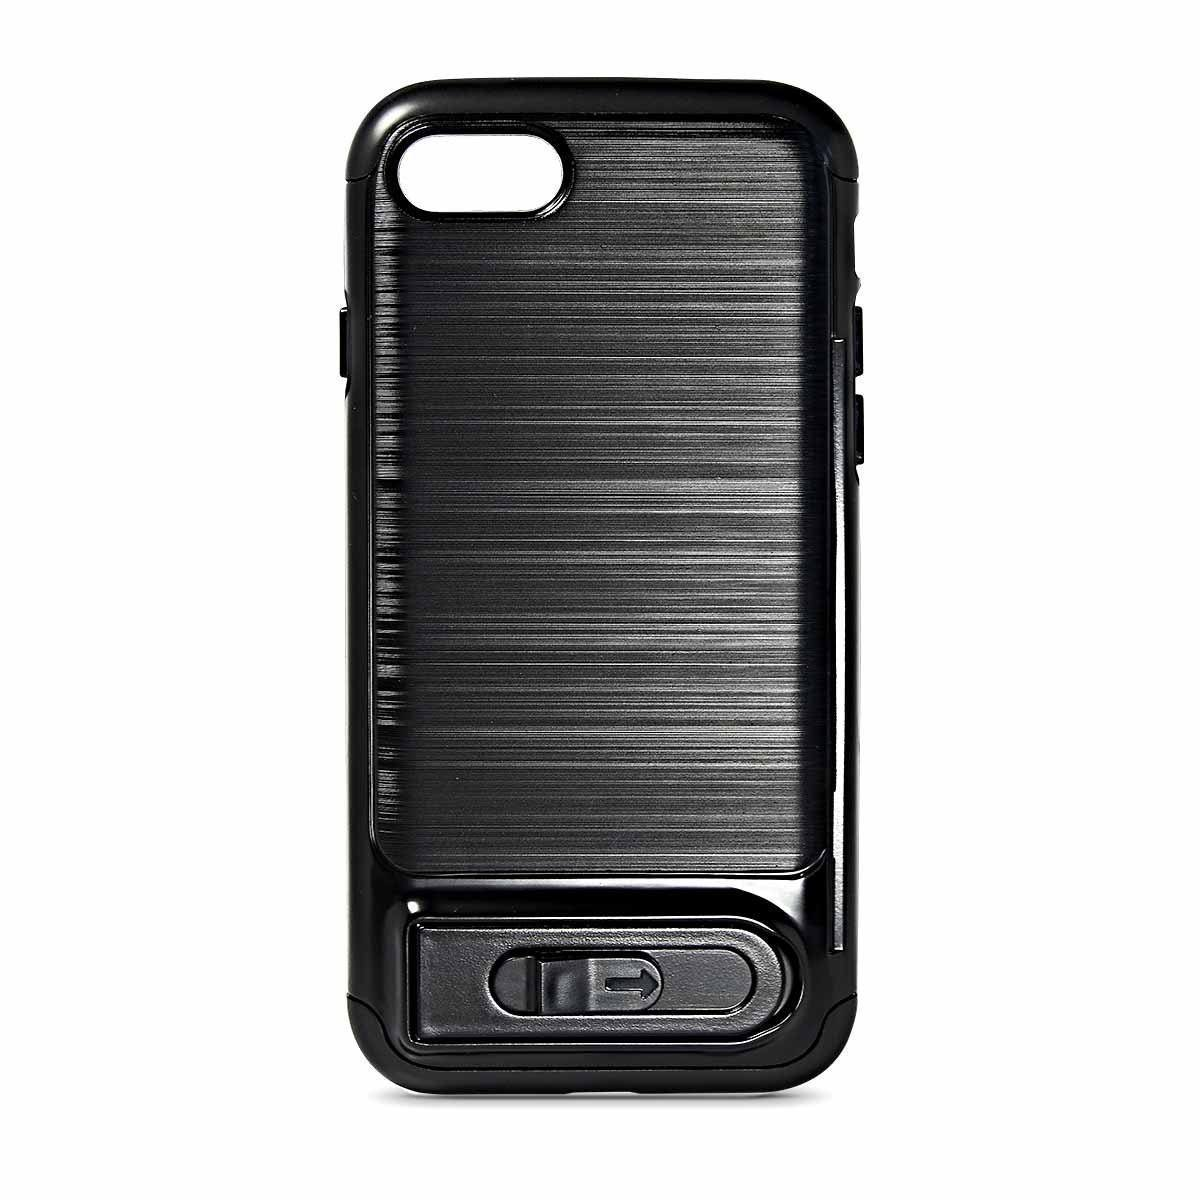 My Card Sliding Case for iPhone 7P /8 Plus - Black